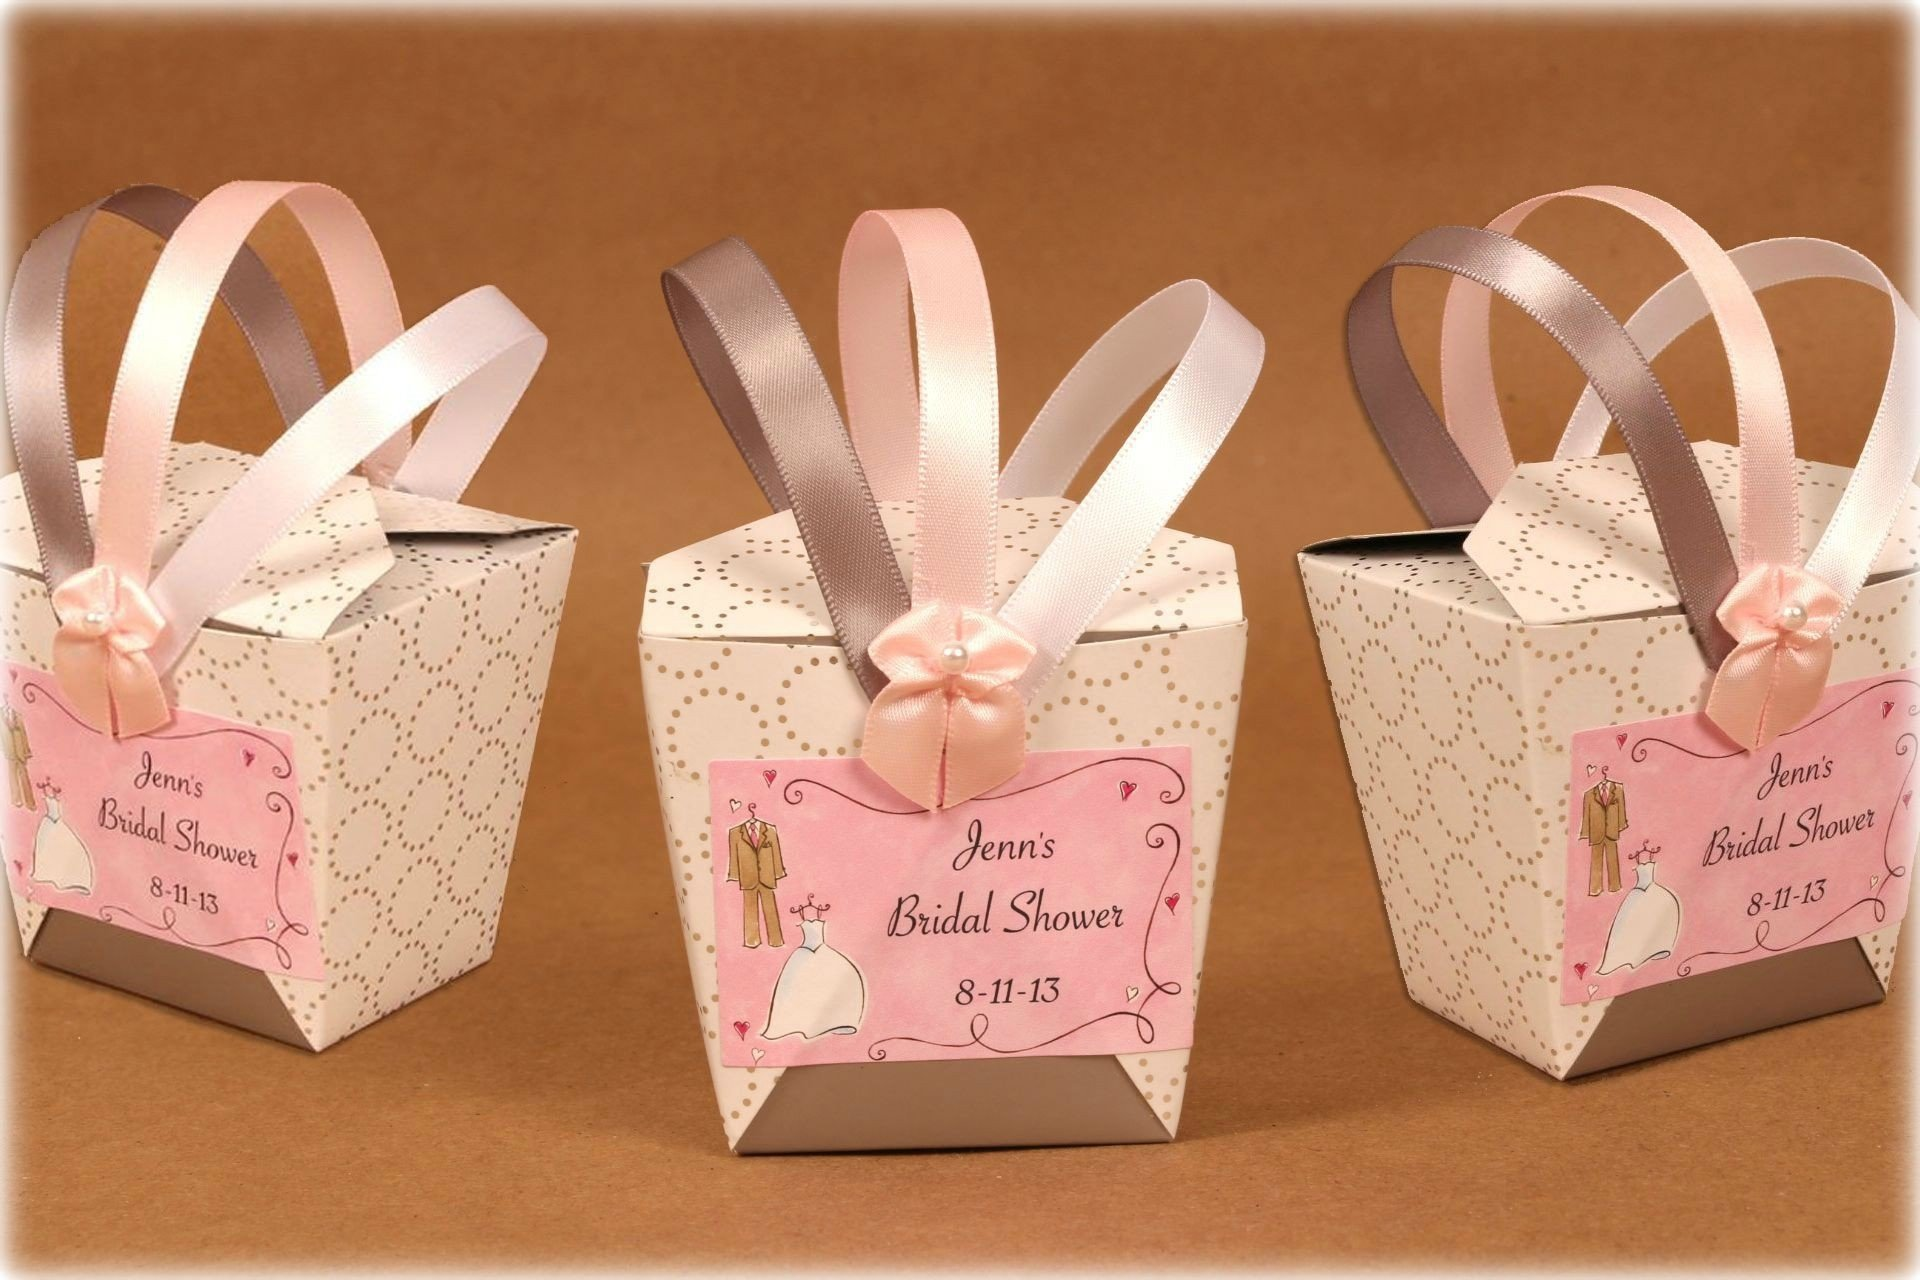 10 Most Popular Ideas For Bridal Shower Favors bridal shower favor chinese takeout style boxes 2020